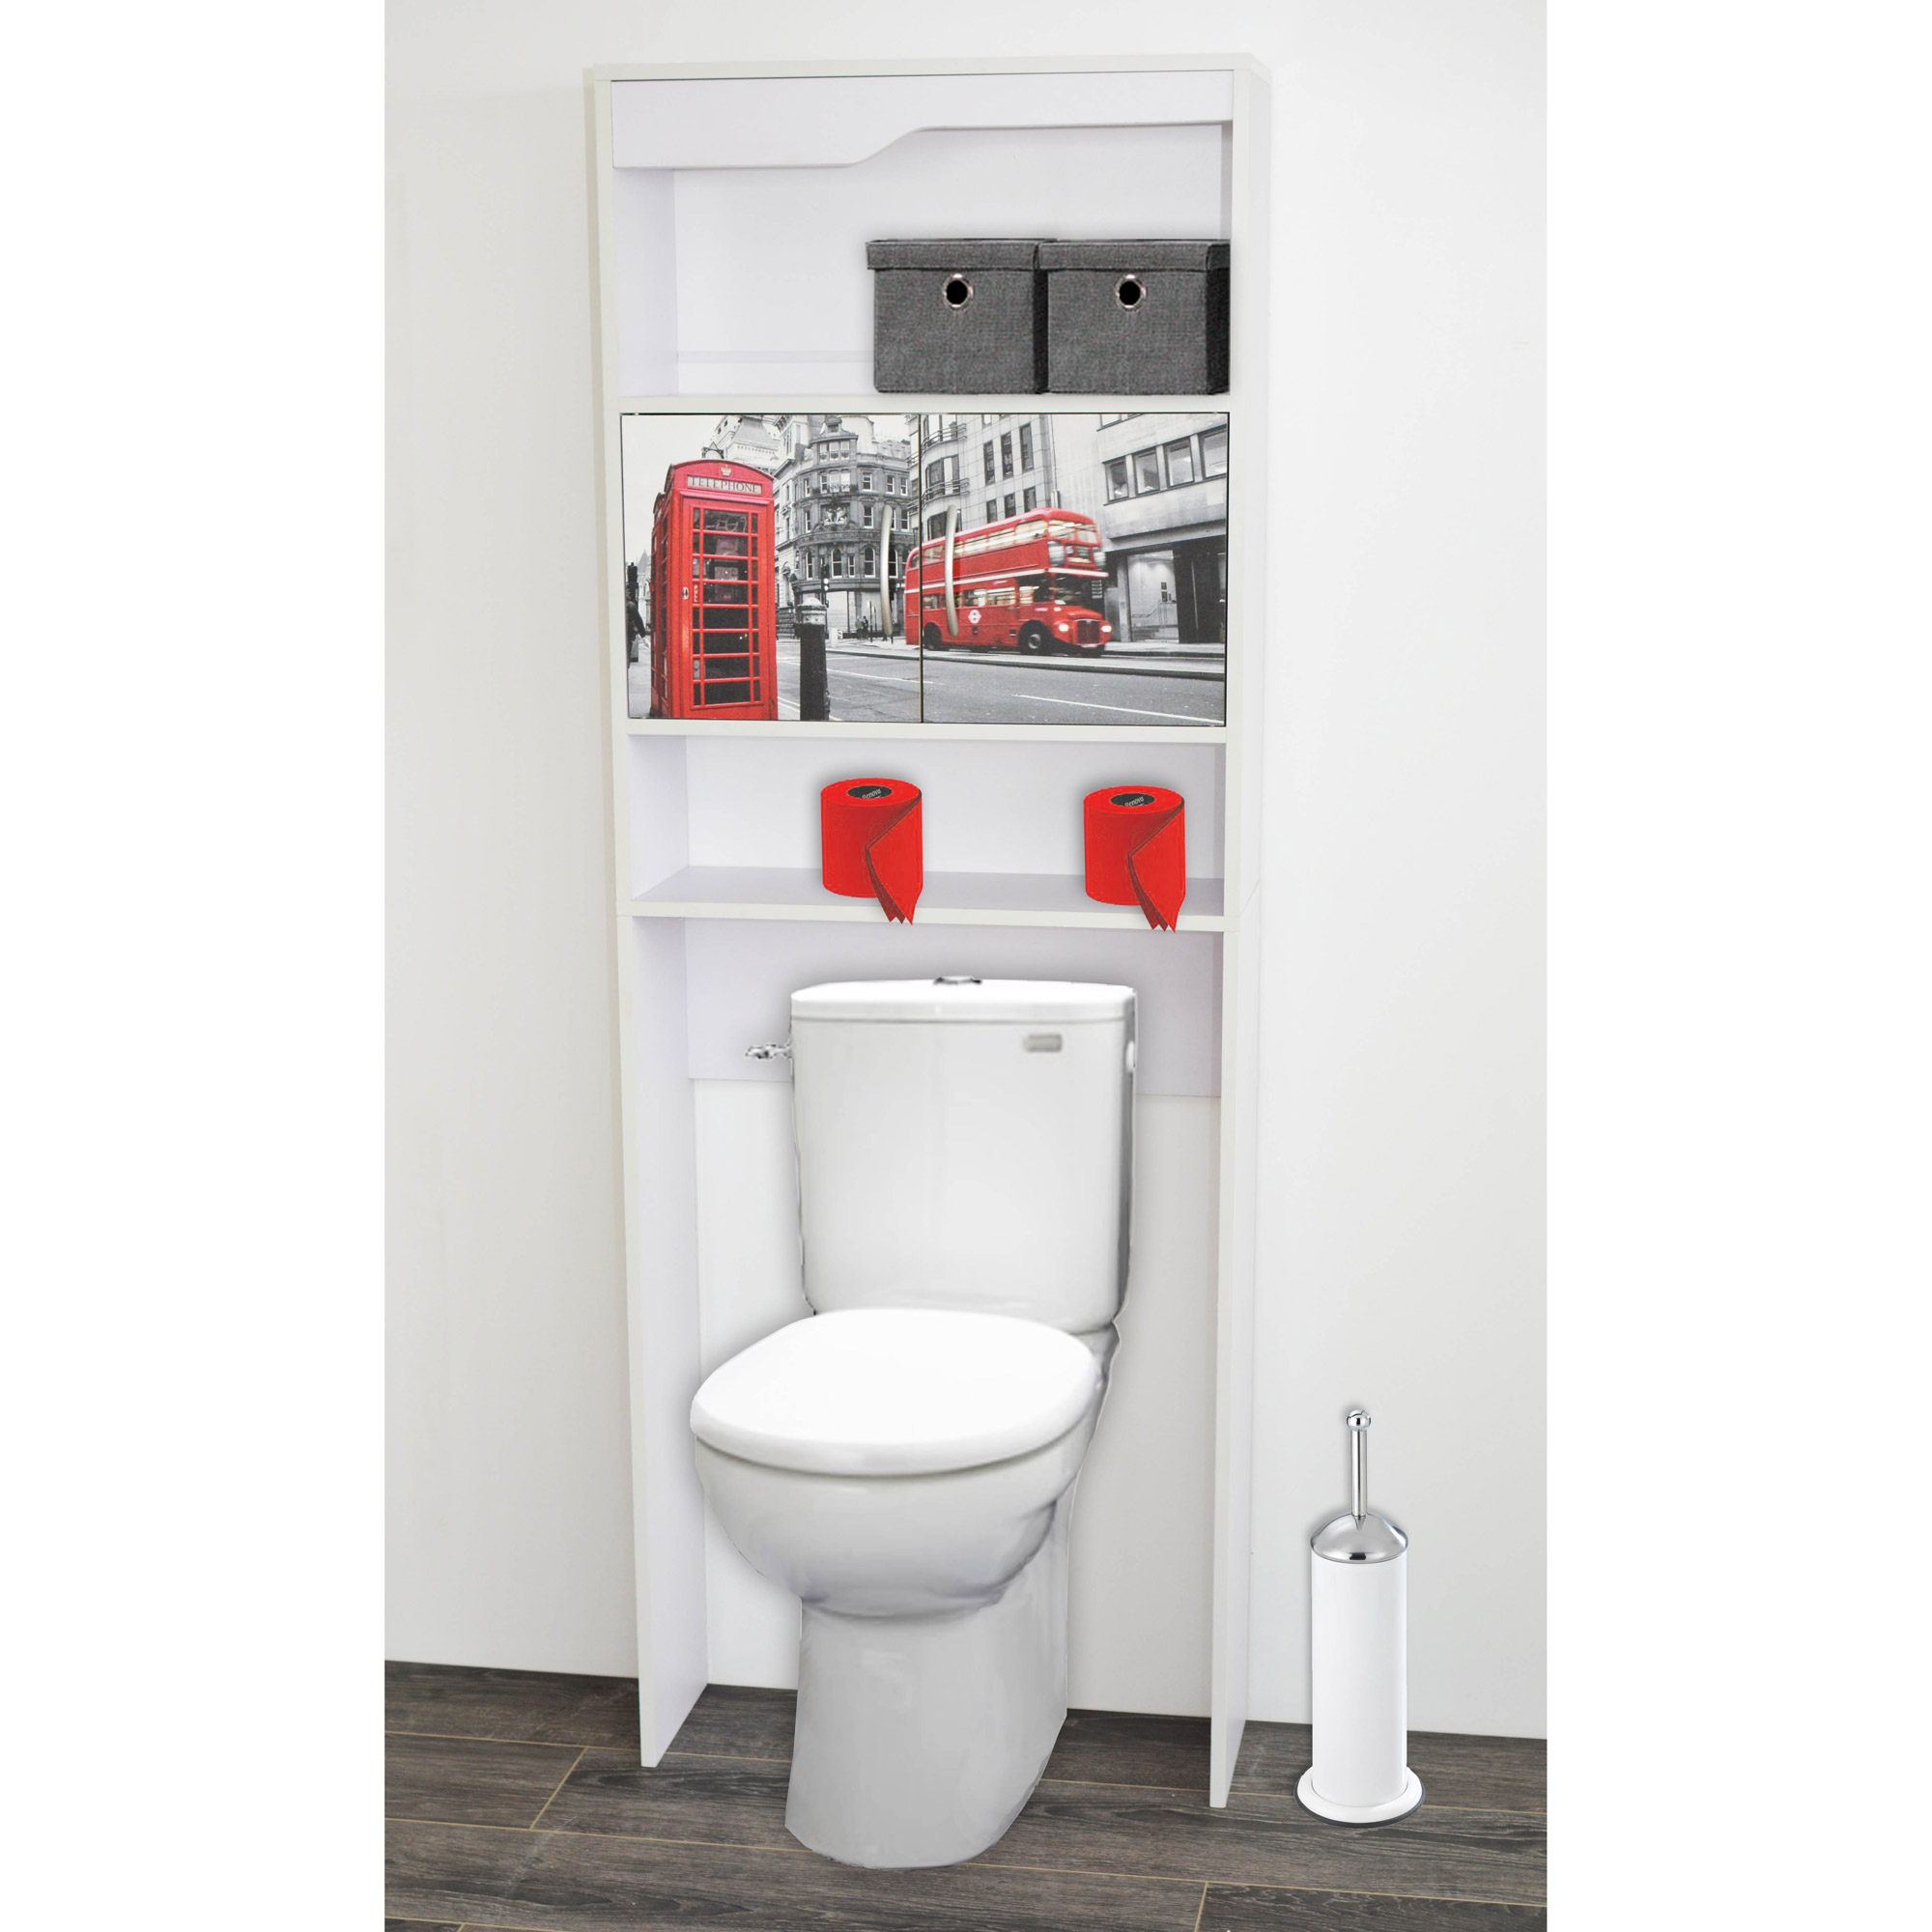 Miroir adhsif gifi with meuble wc gifi - Meuble wc design ...